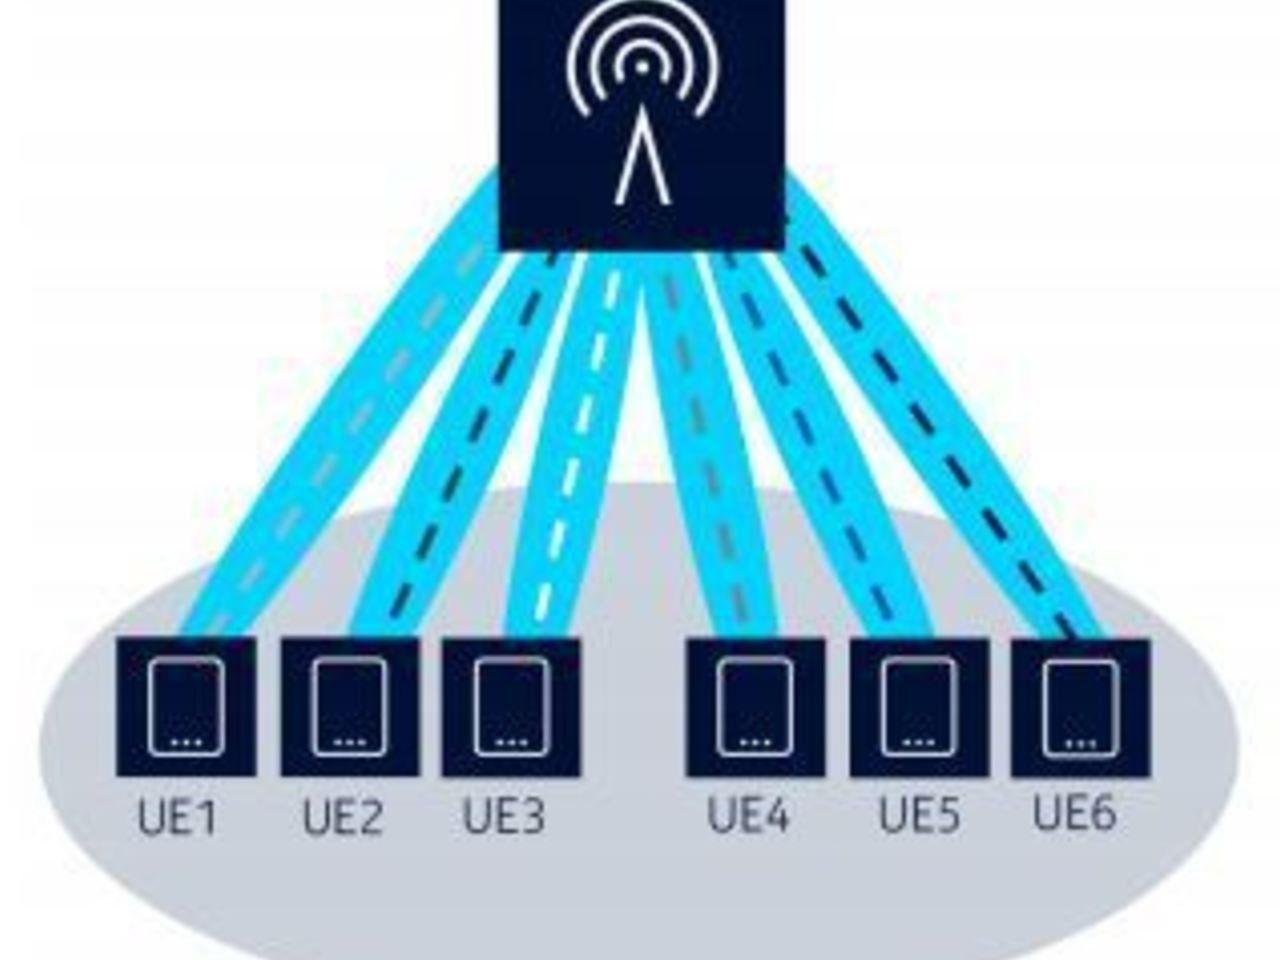 WirelessAI: Adaptive Beamforming for 5G | Intel DevMesh